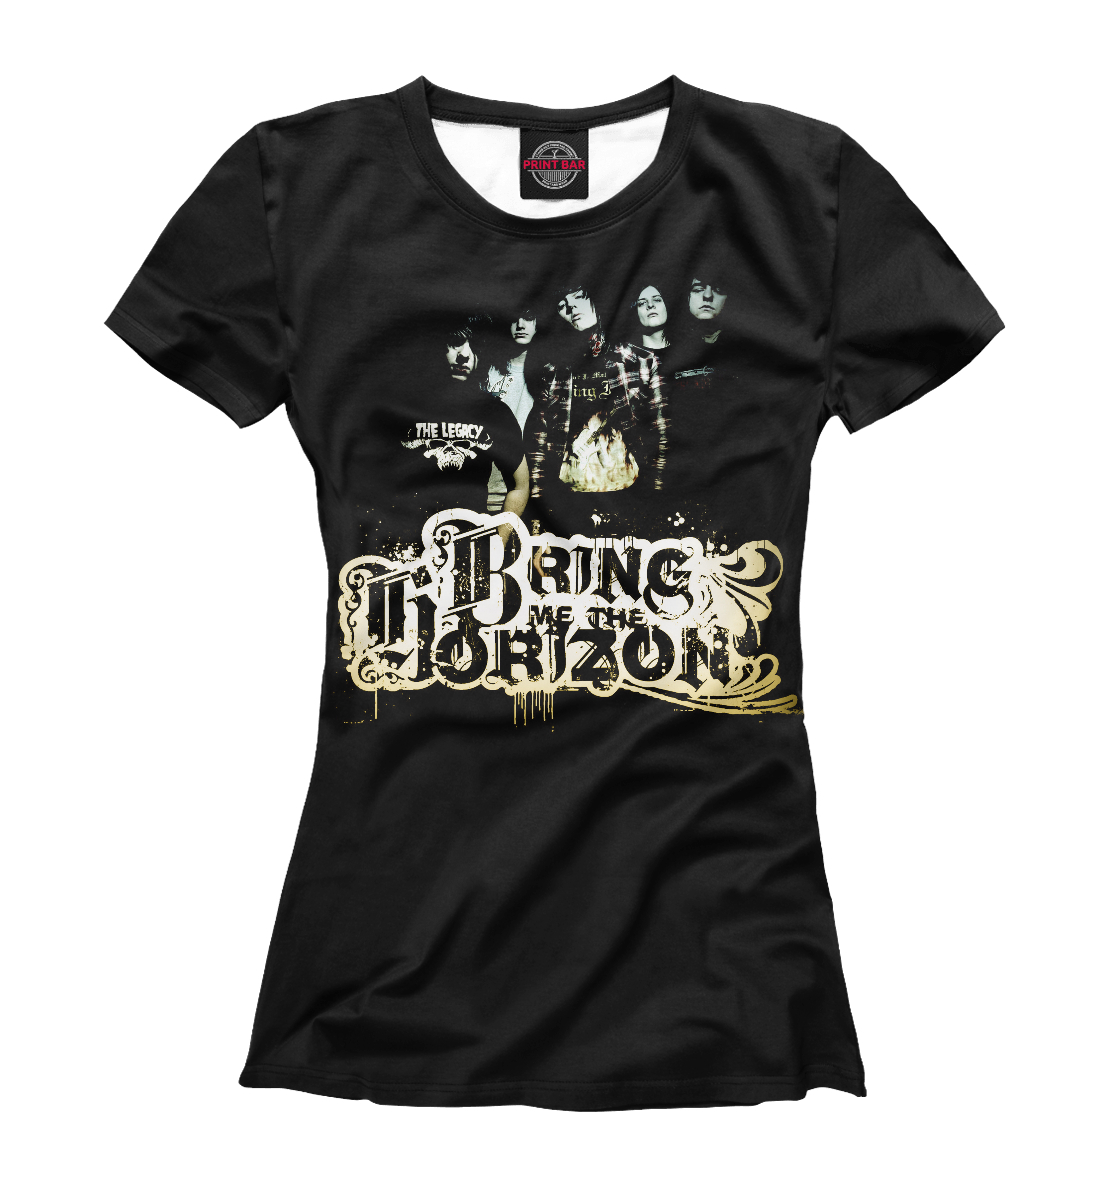 Купить Bring Me The Horizon, Printbar, Футболки, BRI-593316-fut-1